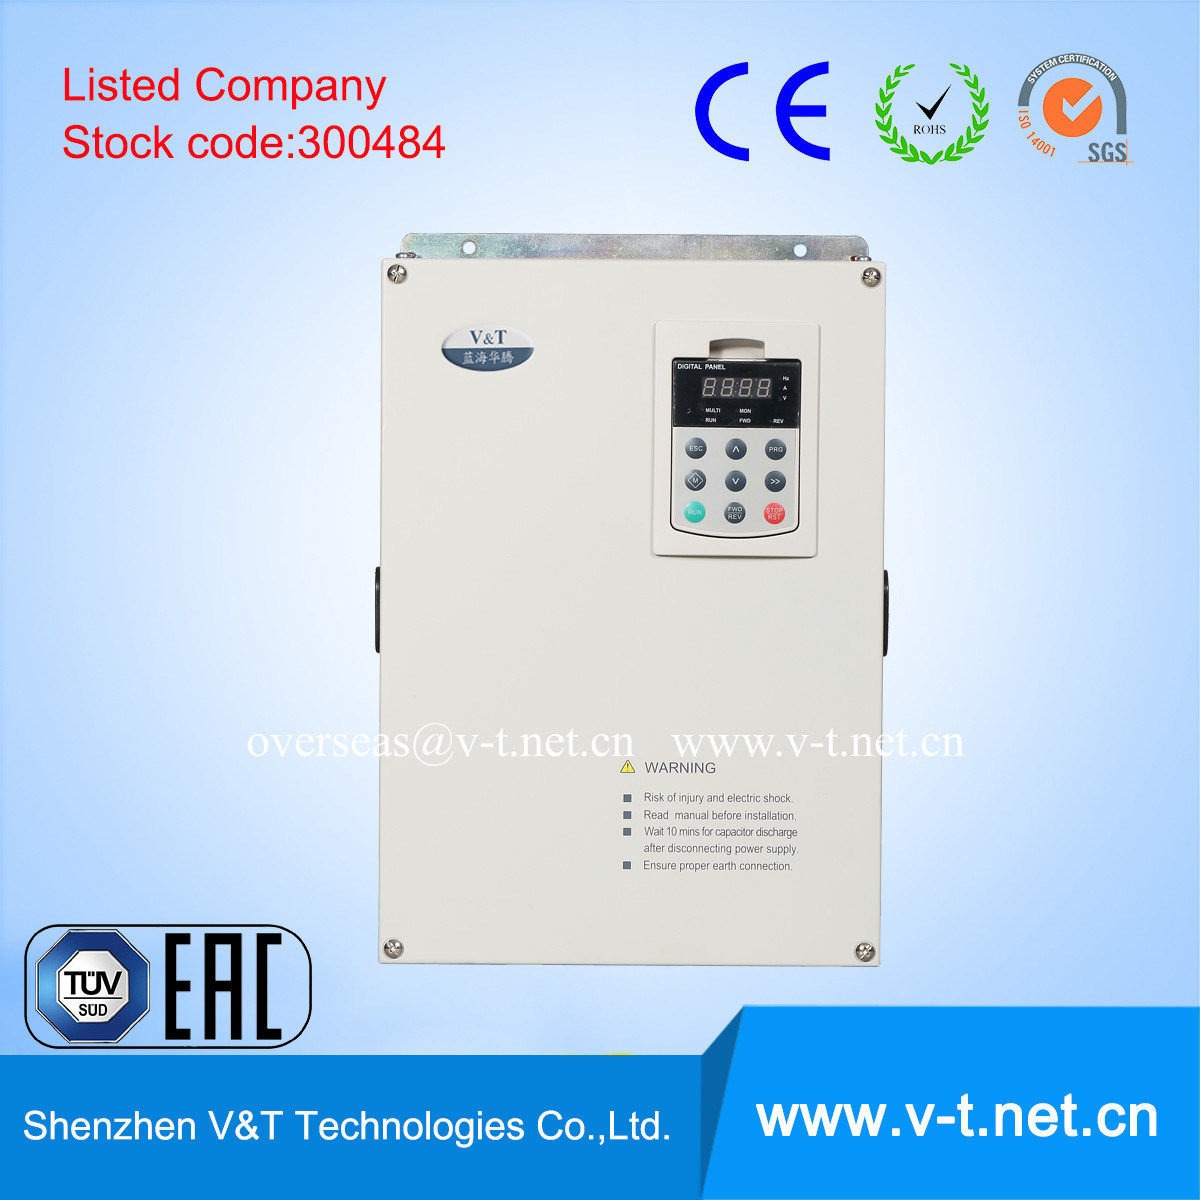 V5 H China Leading Mini Variable Frequency Inverter 1 3ph With Power Supply Sequence Function Plc Logic 04 To 45kw Hd Ac Drive